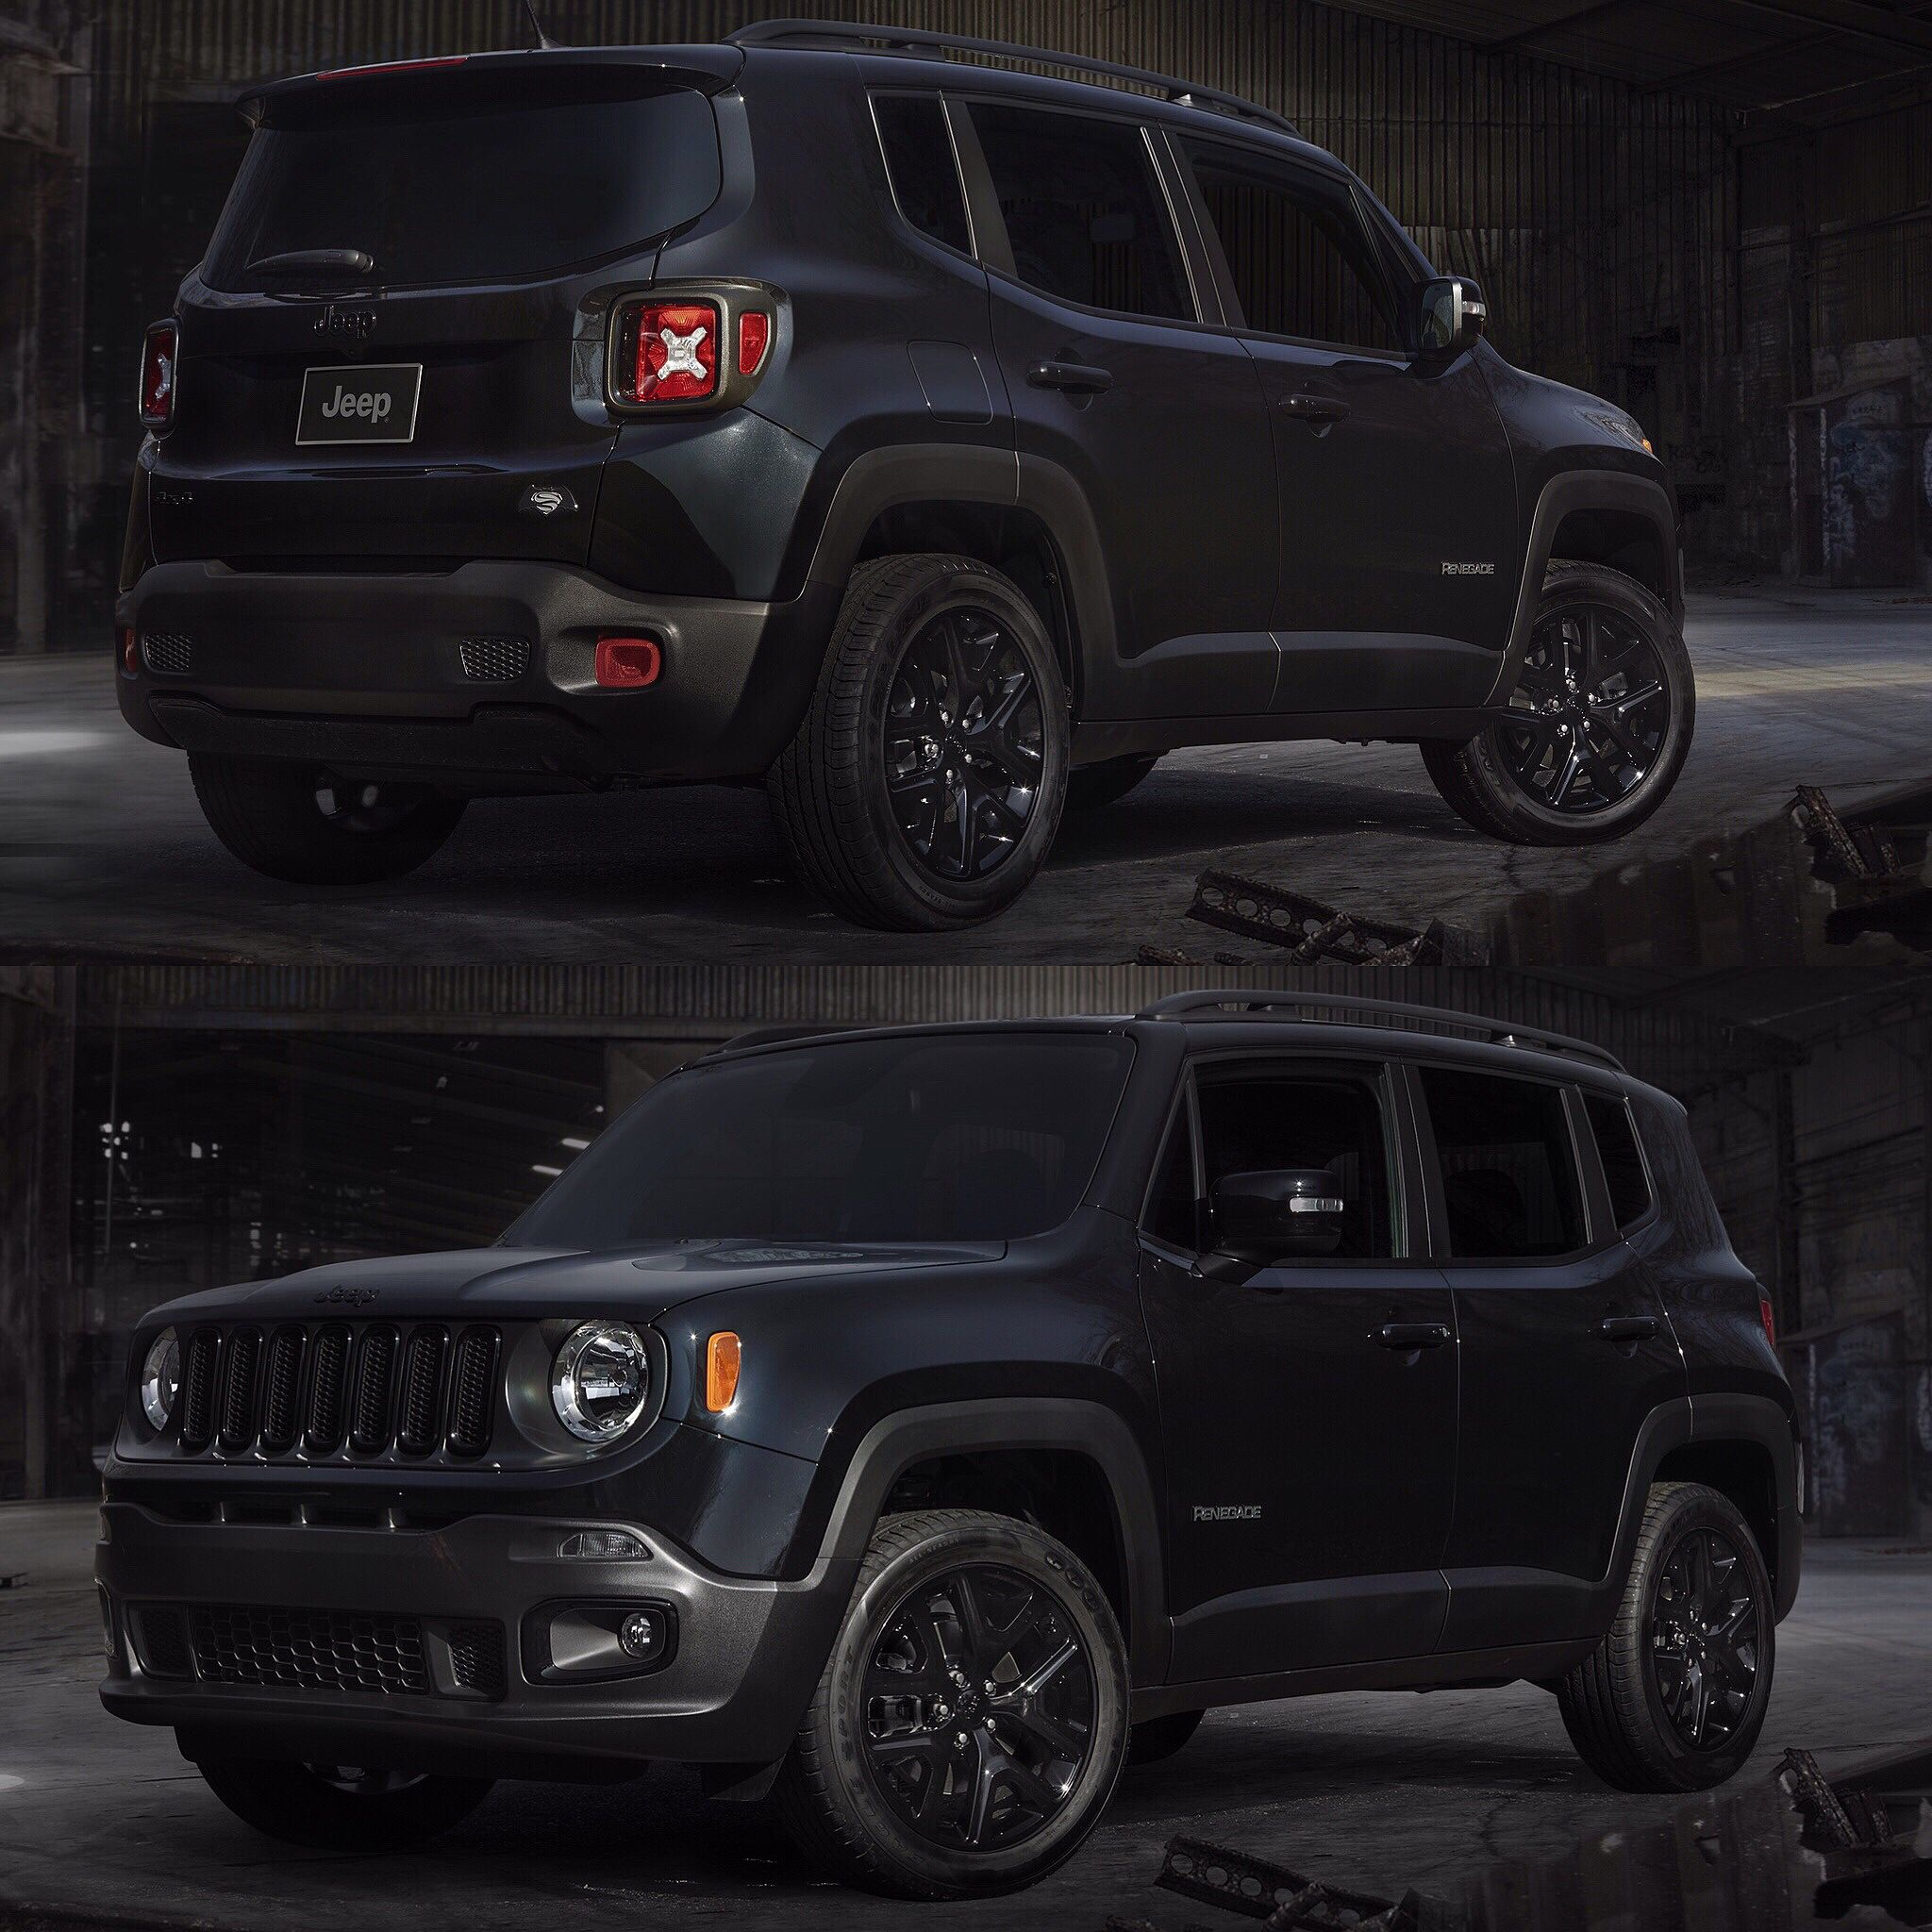 2016 Jeep Renegade Dawn Of Justice Special Edition Available Now With A U S Msrp Of 26 250 Not Including Destinat Jeep Renegade Jeep Jeep Renegade Trailhawk